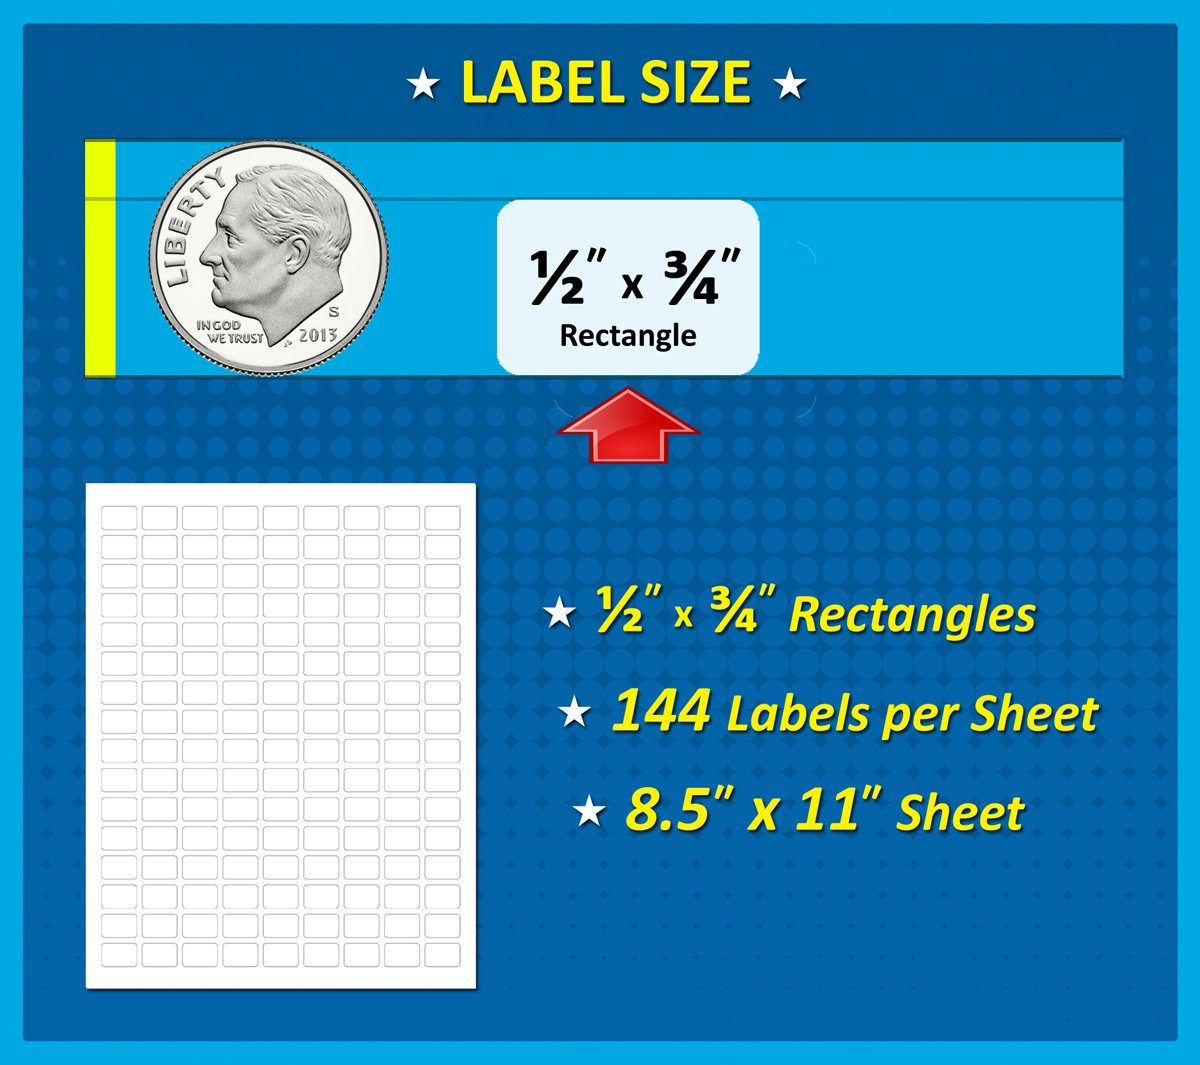 144 Labels per Sheet Pack of 1008 1//2 x 3//4 White Rectangle Labels Fits All Laser//Inkjet Printers 8 1//2 x 11 Inch Sheet 0.5 x 0.75 Inches